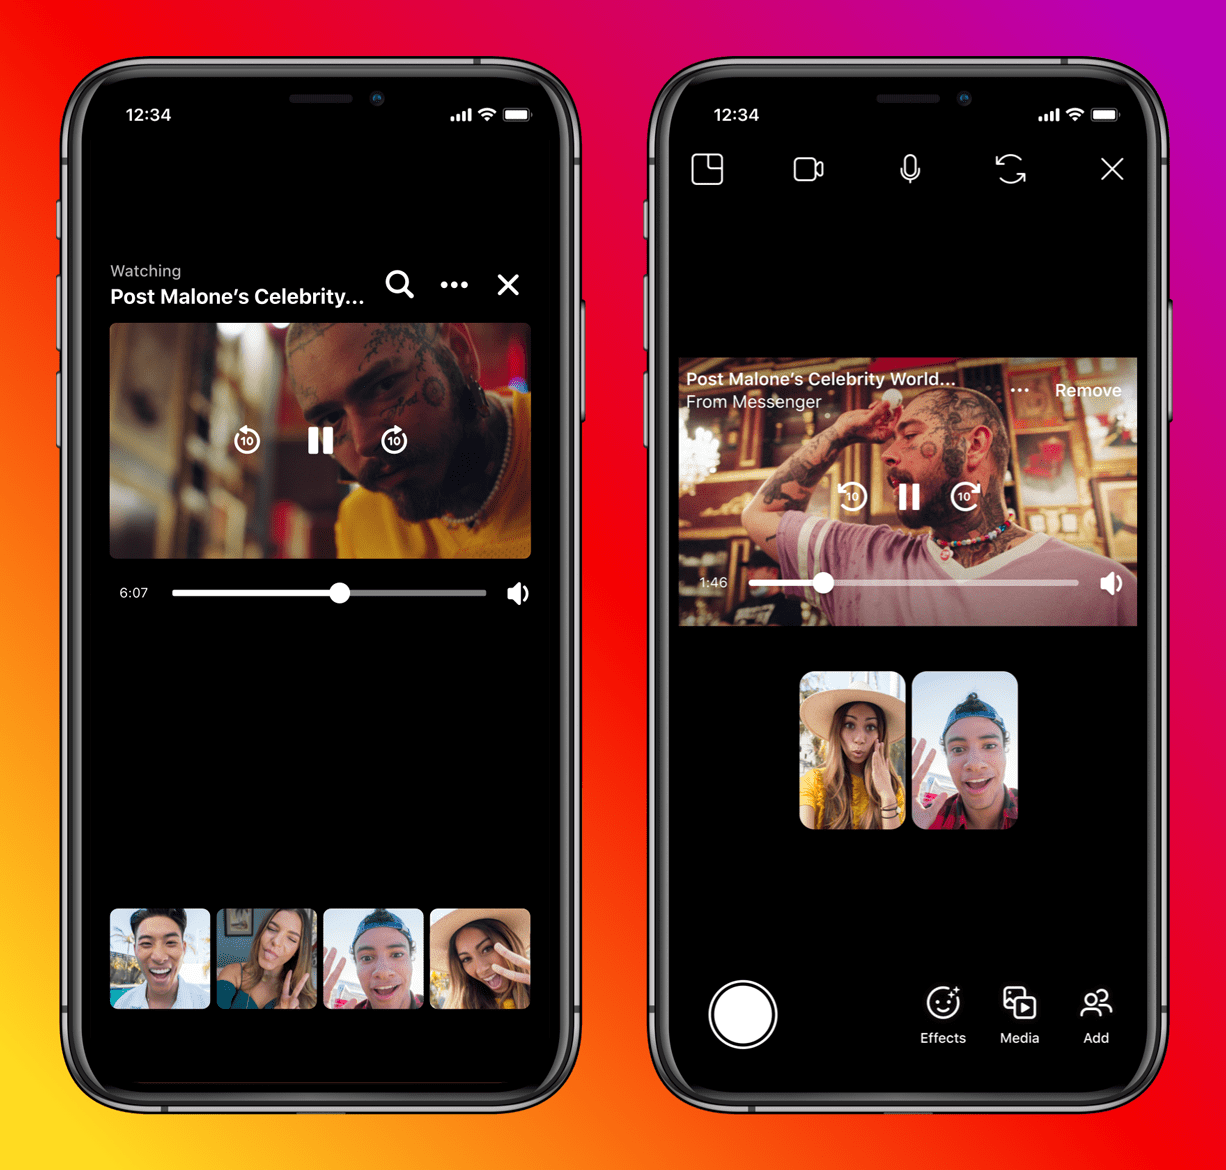 A New Messaging Experience on Instagram